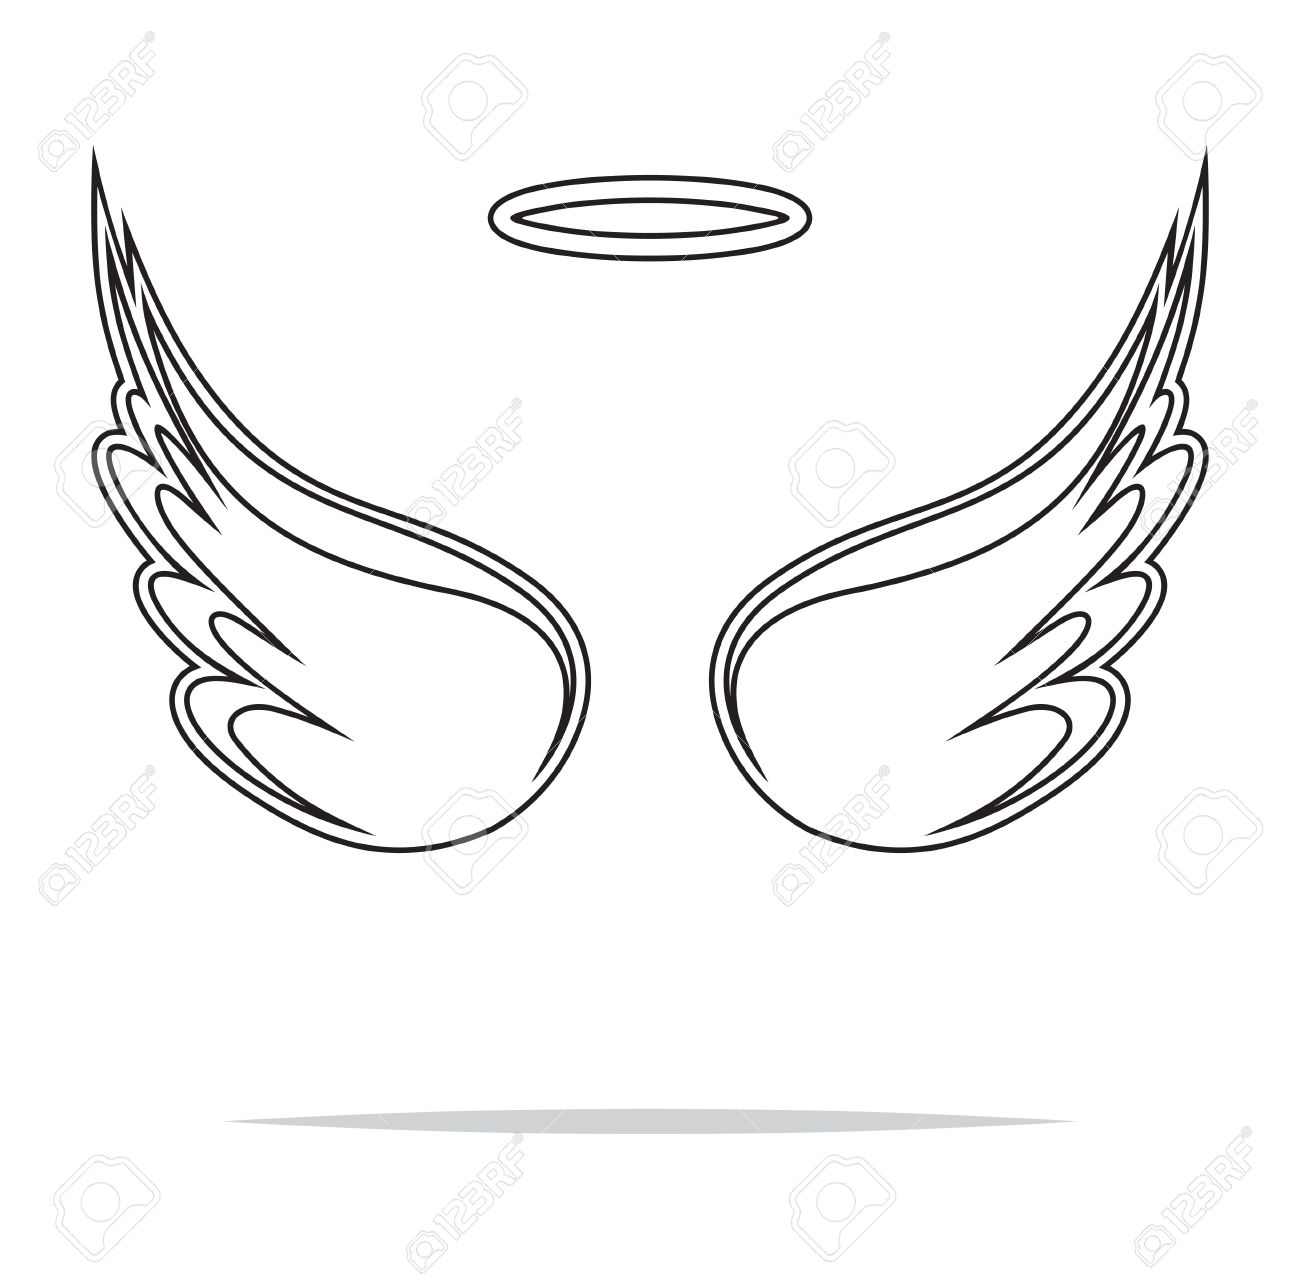 Halo clipart free wing Halo Angel Halo Clipart Free